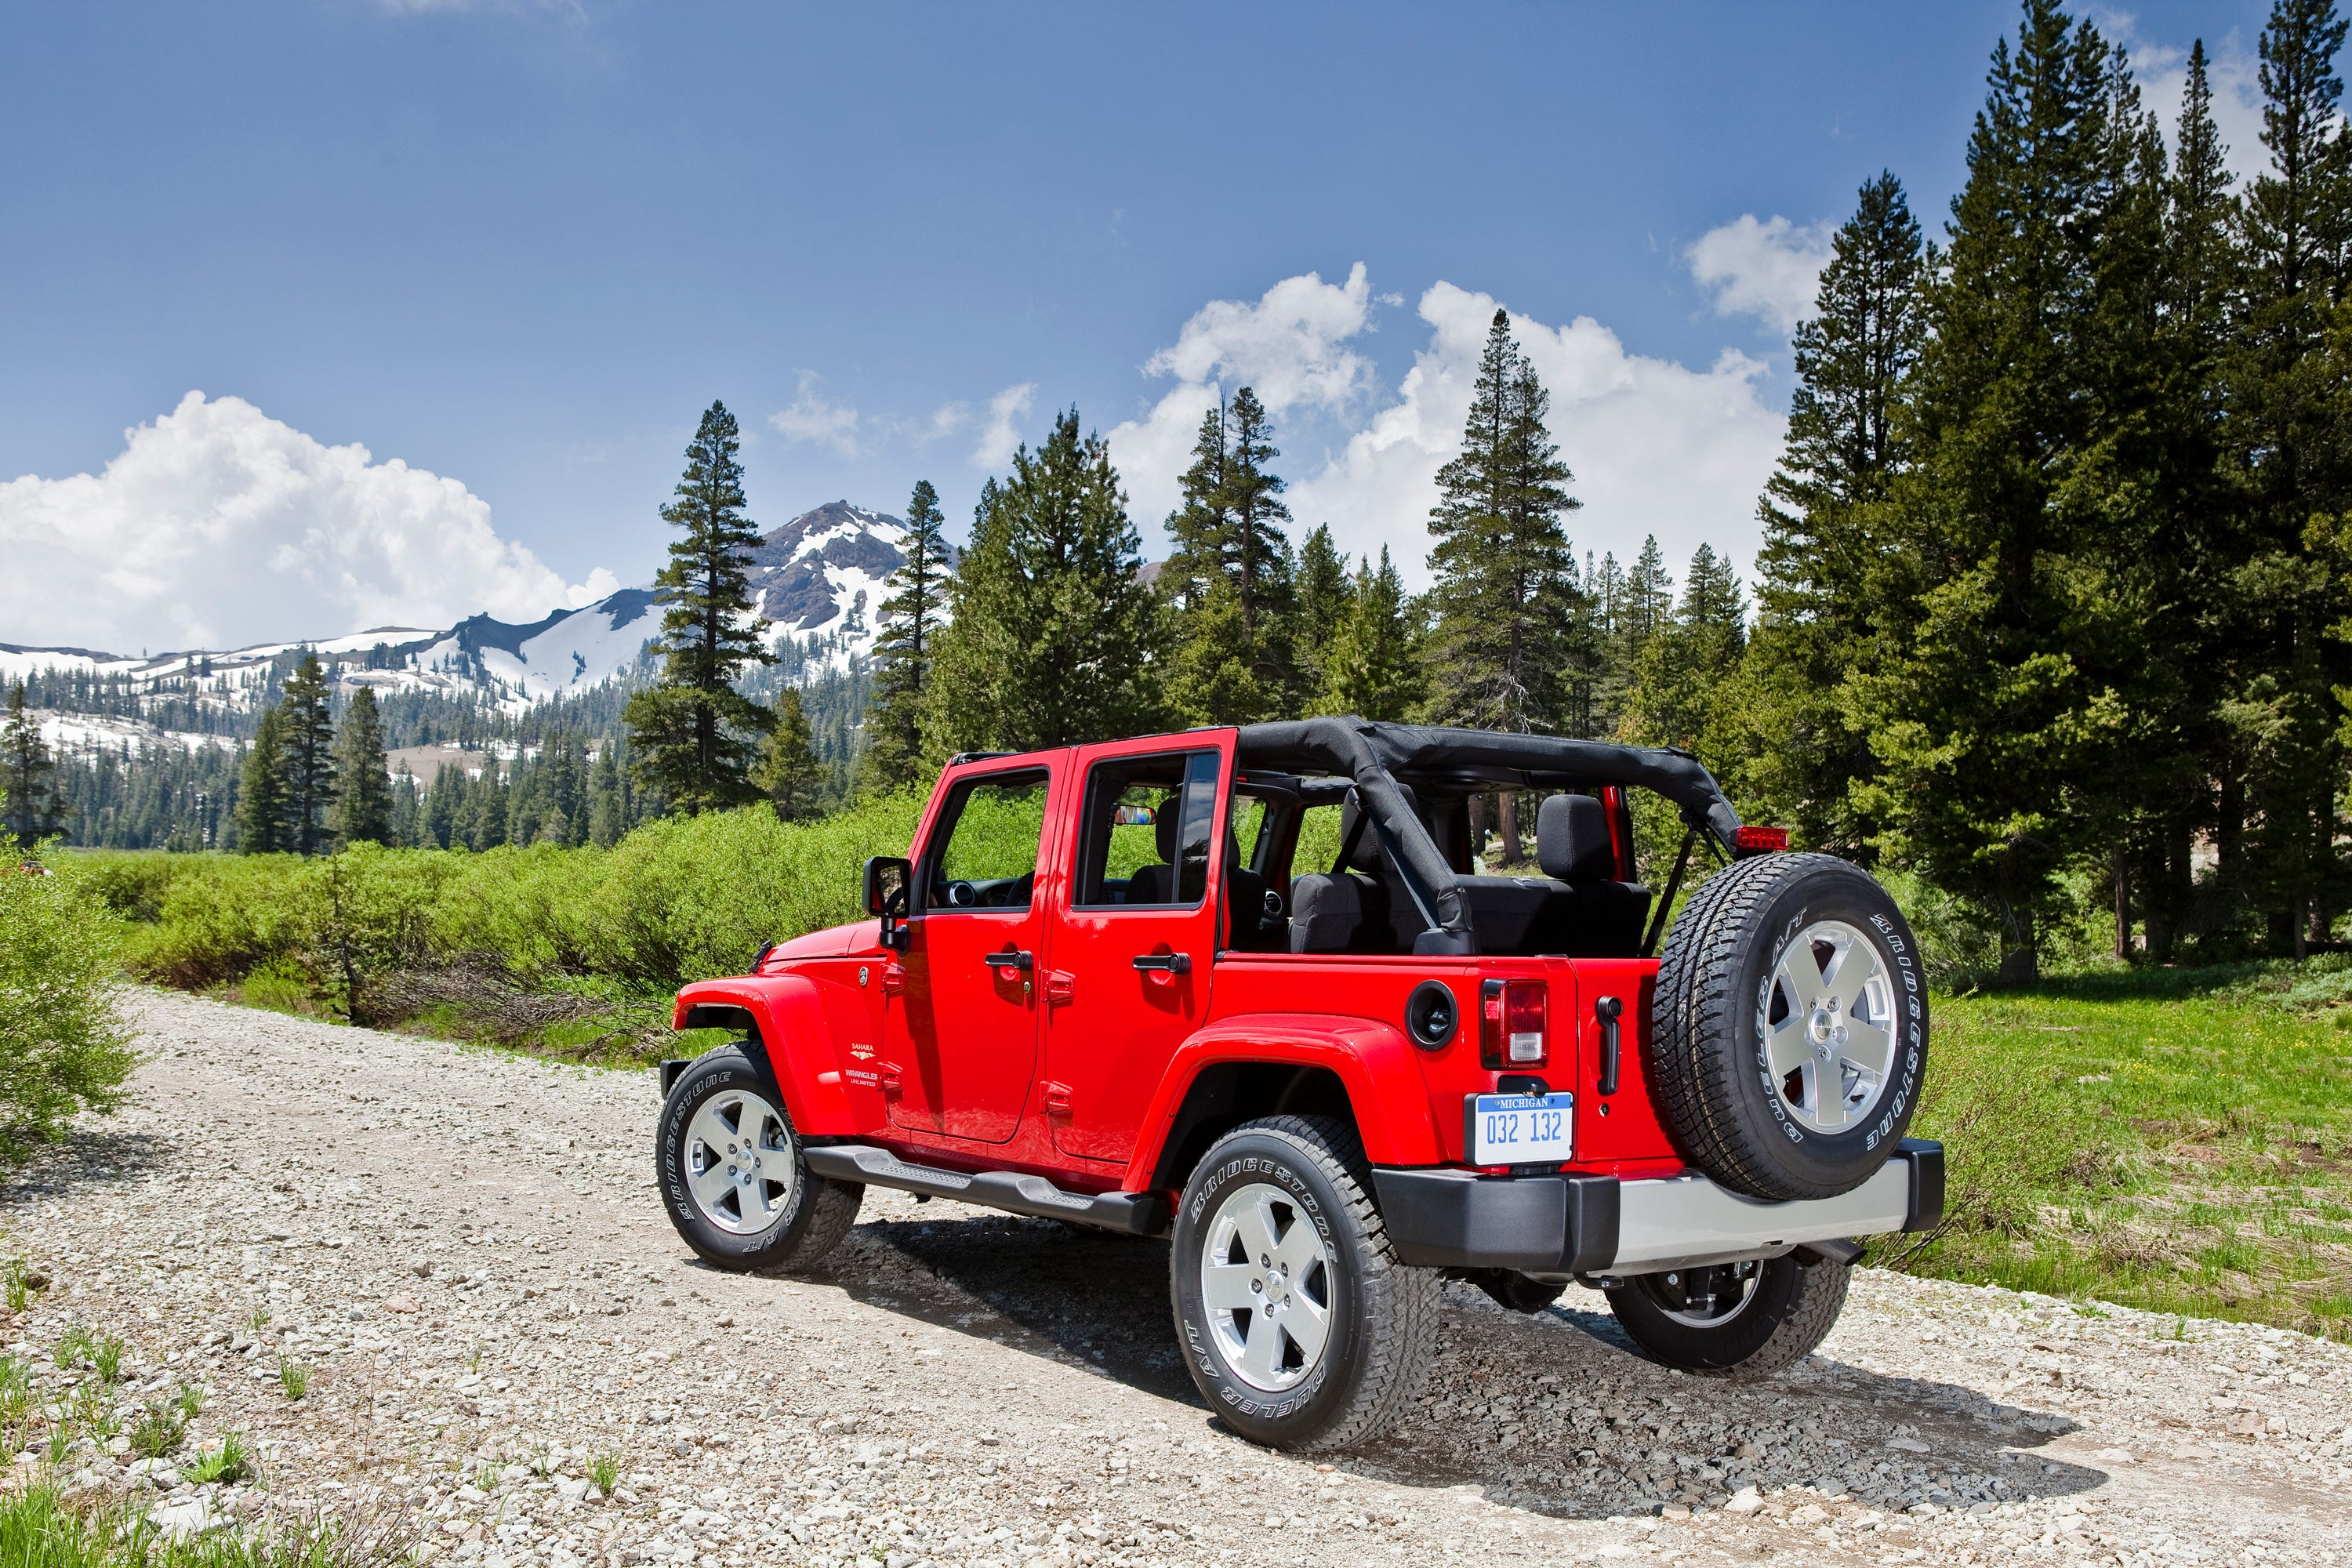 Jeep tops 'Consumer Reports' list of worst car values